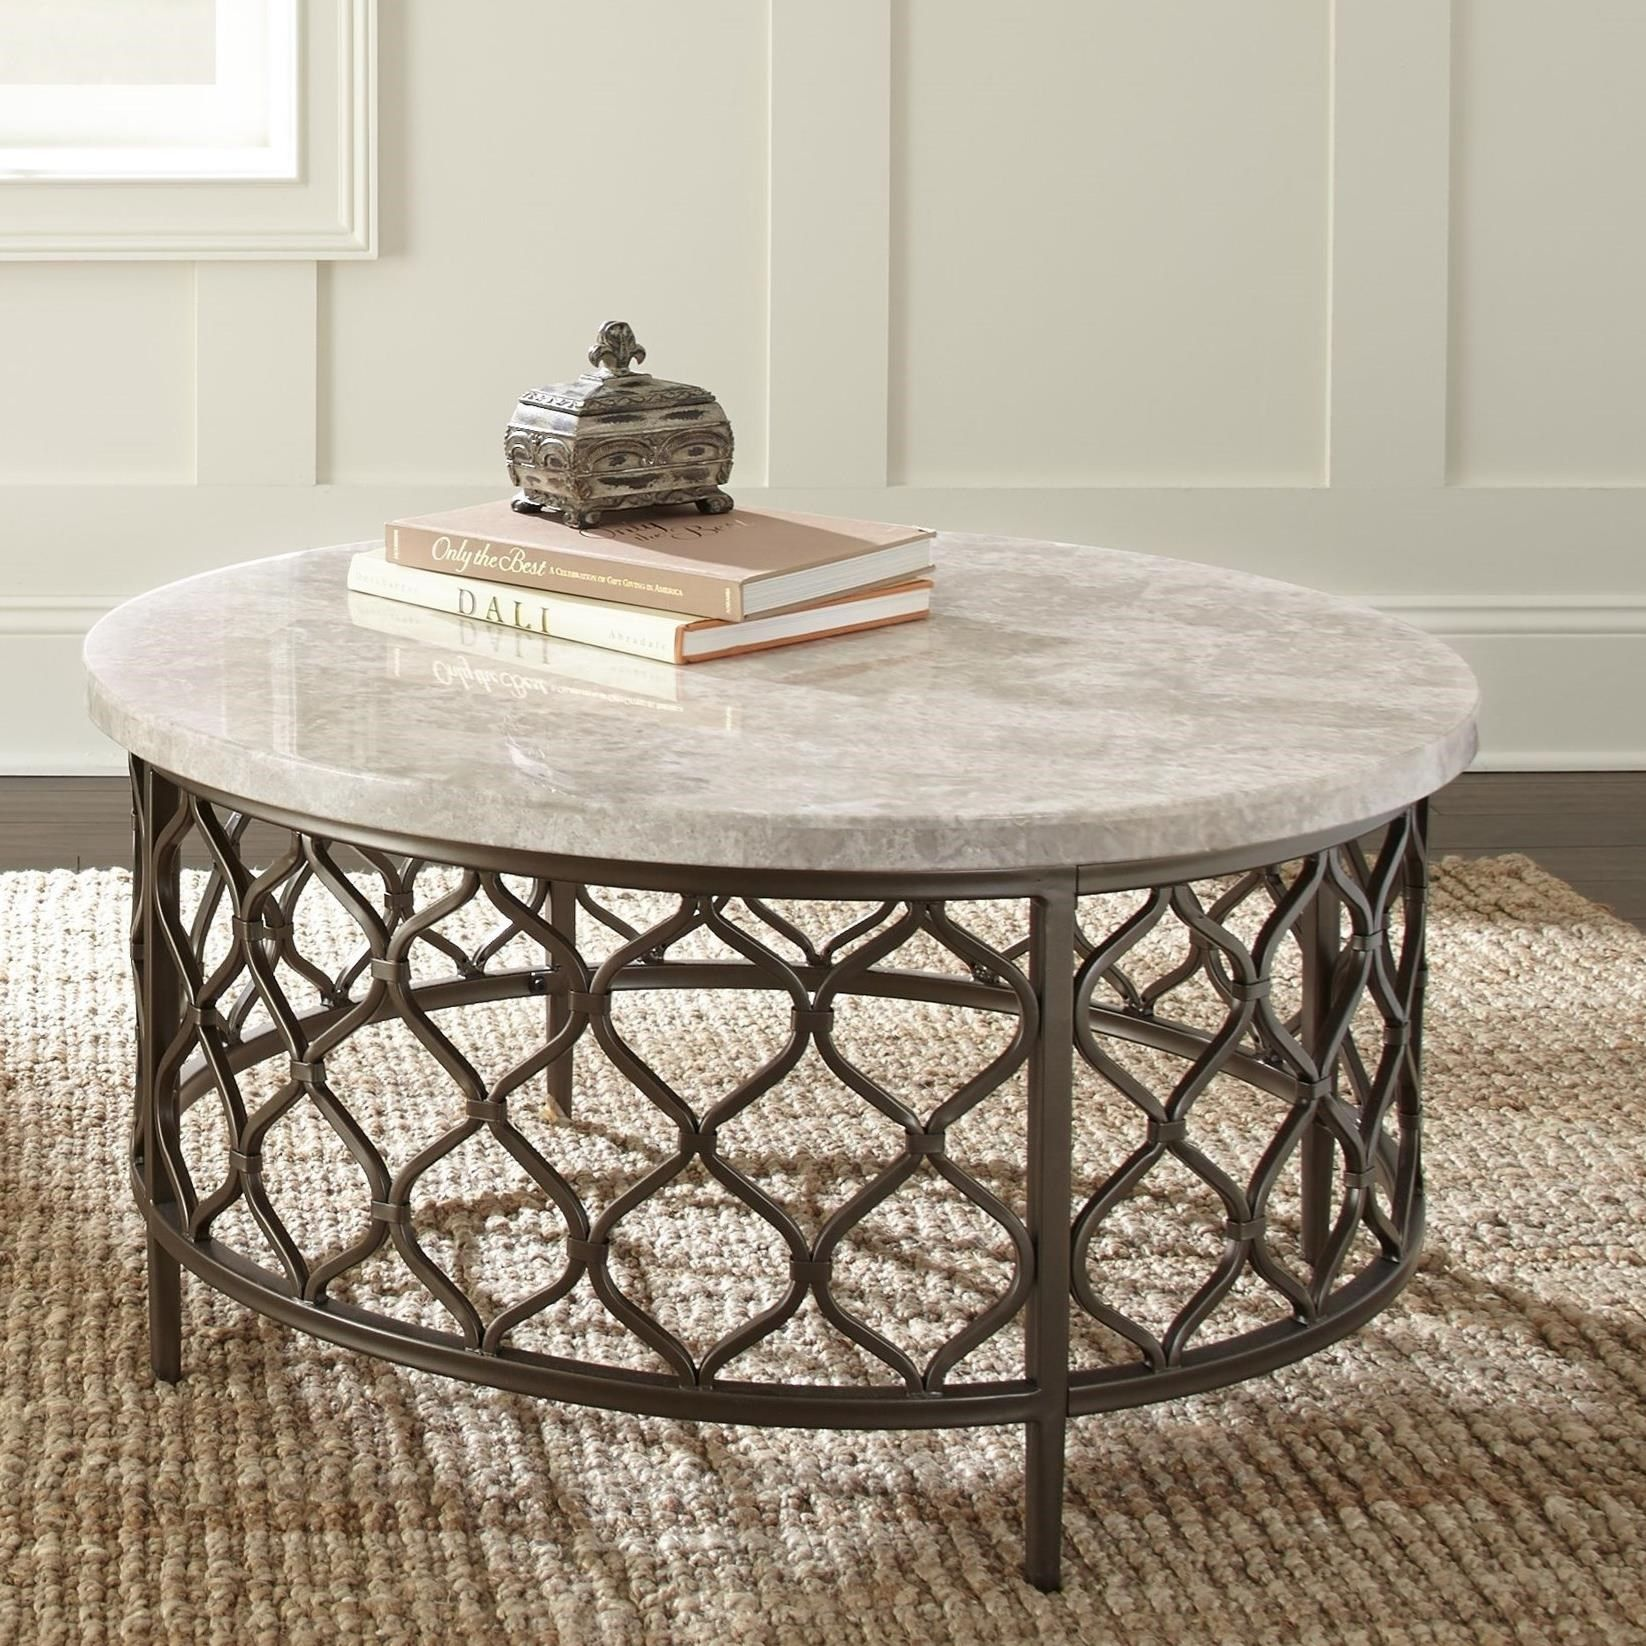 Roland Stone Top Cocktail Table By Steve Silver Stone Coffee Table Round Coffee Table Coffee Table Wood [ 1646 x 1646 Pixel ]